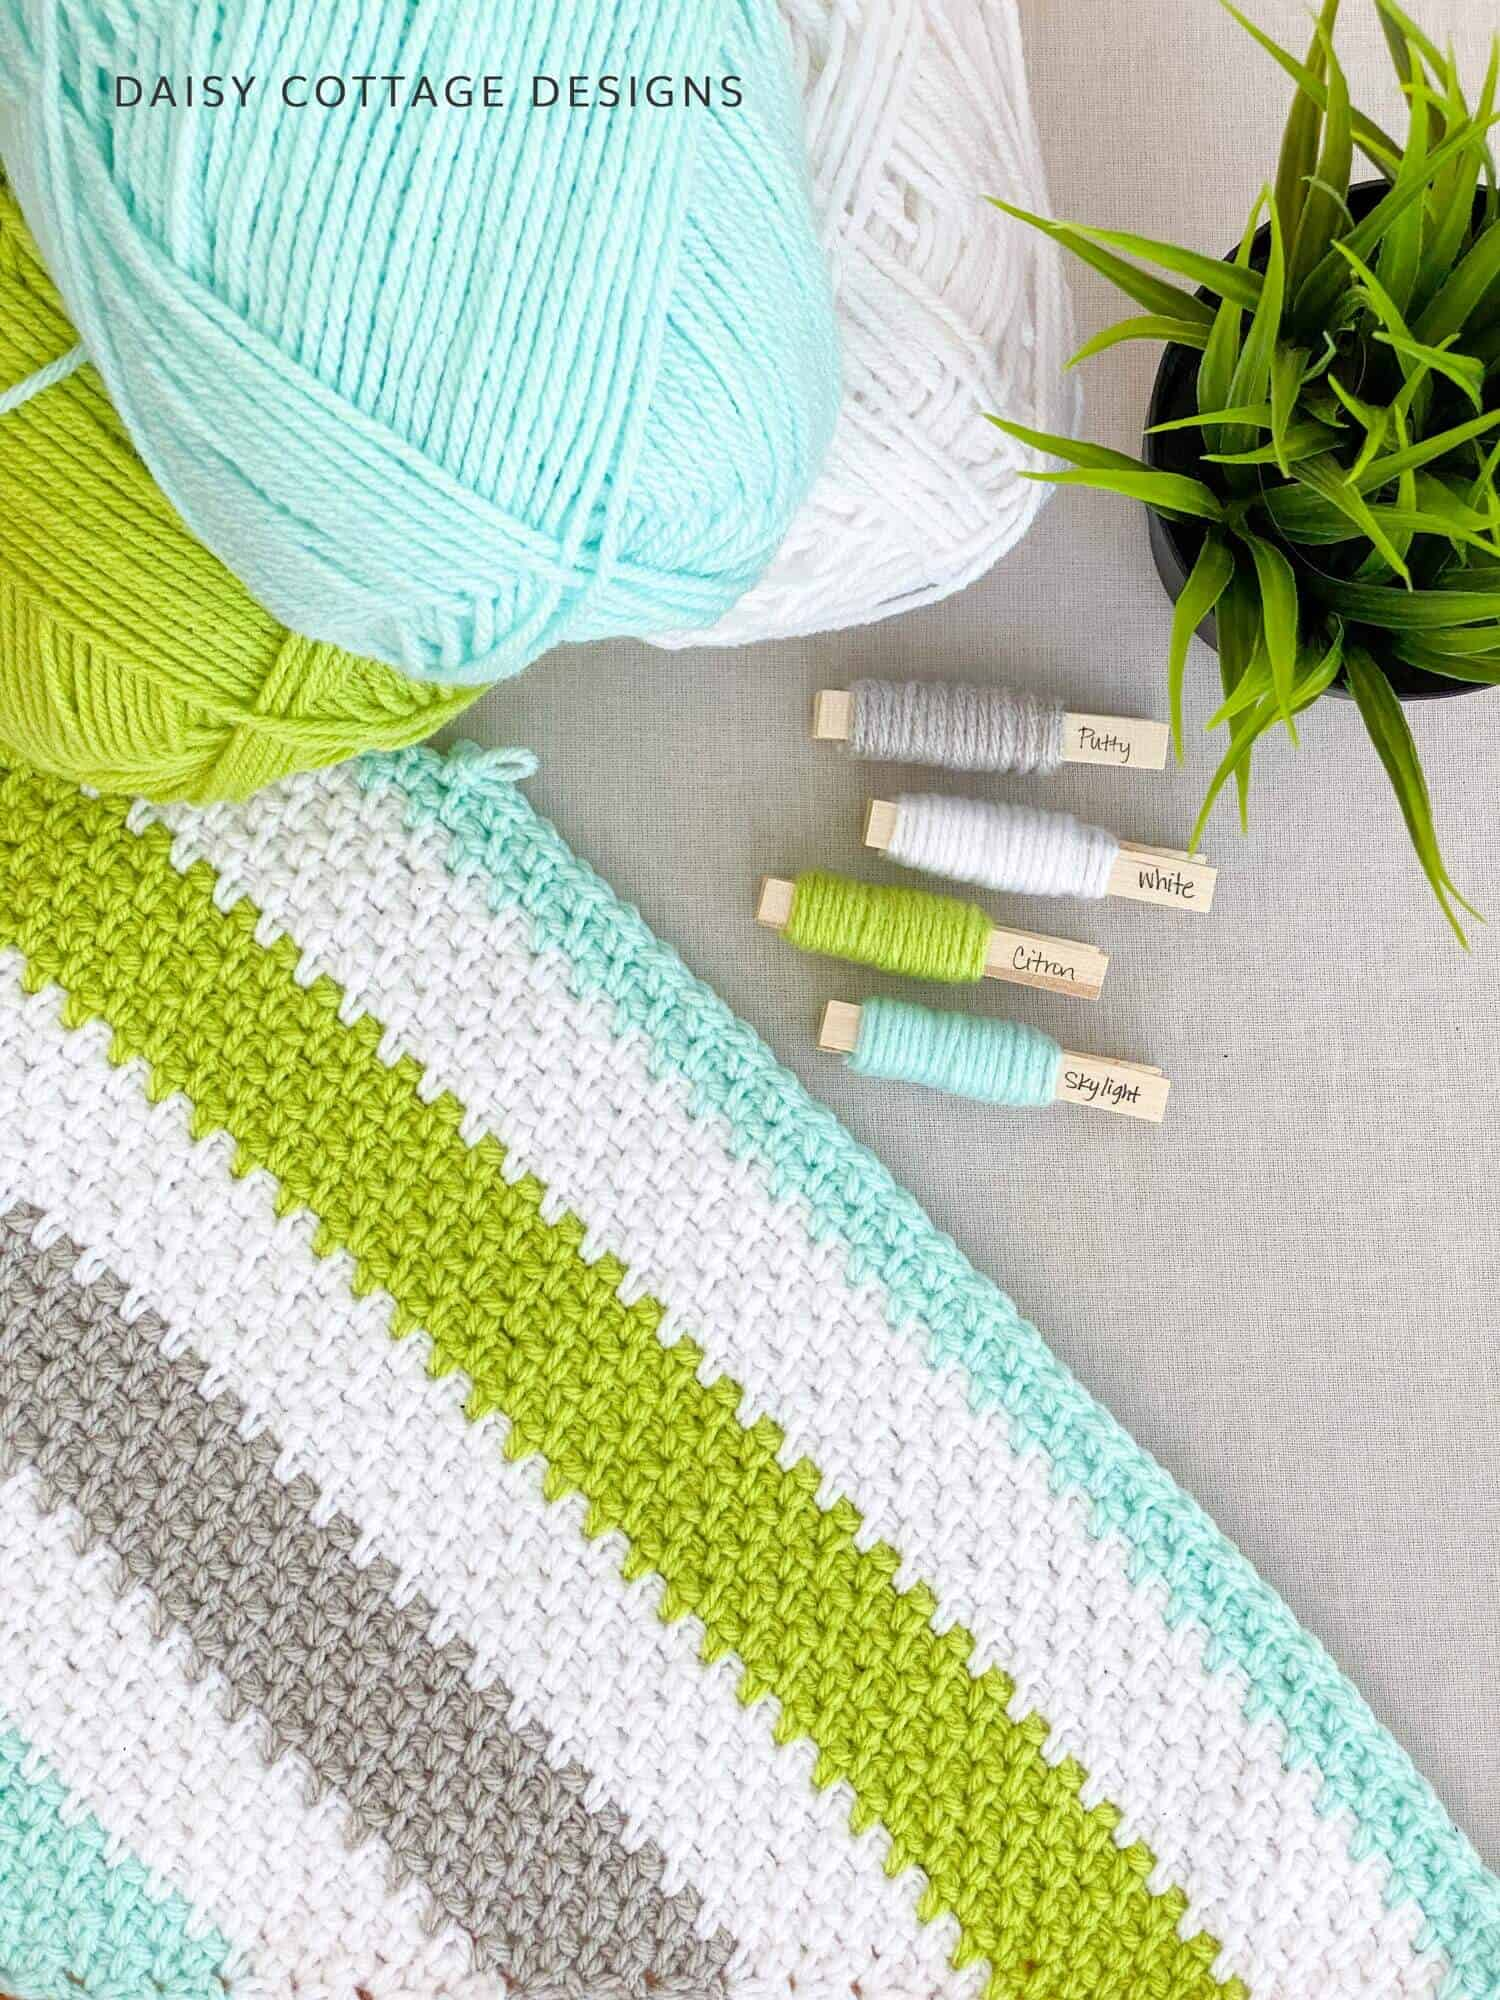 Use this Moss Stitch Tutorial using fresh, bright colors to create gorgeous blankets for your home or as gifts for friends.